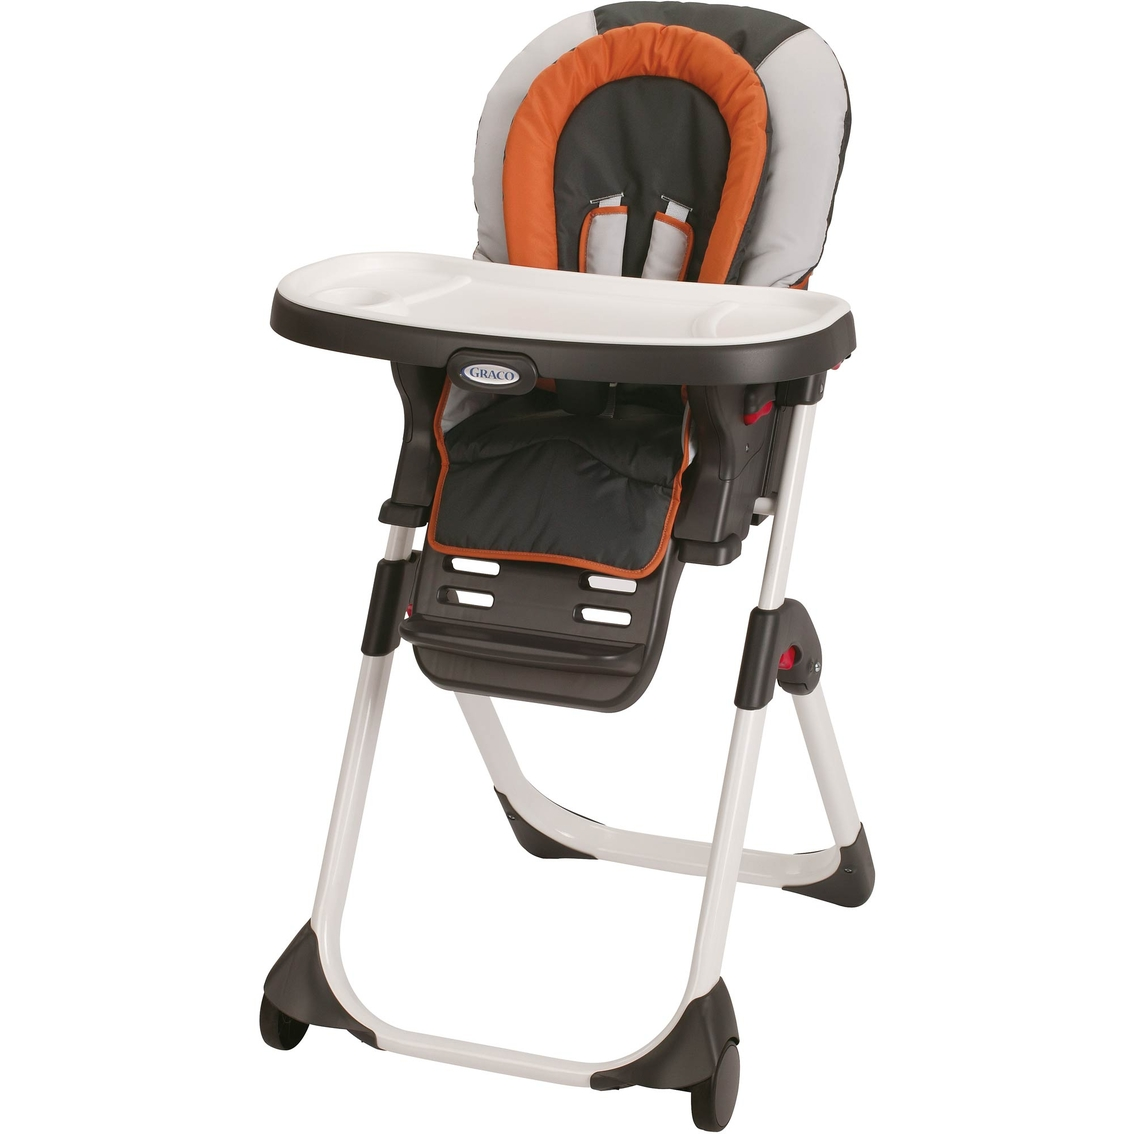 graco duodiner lx high chair staples big and tall ergonomic highchair highchairs baby toys